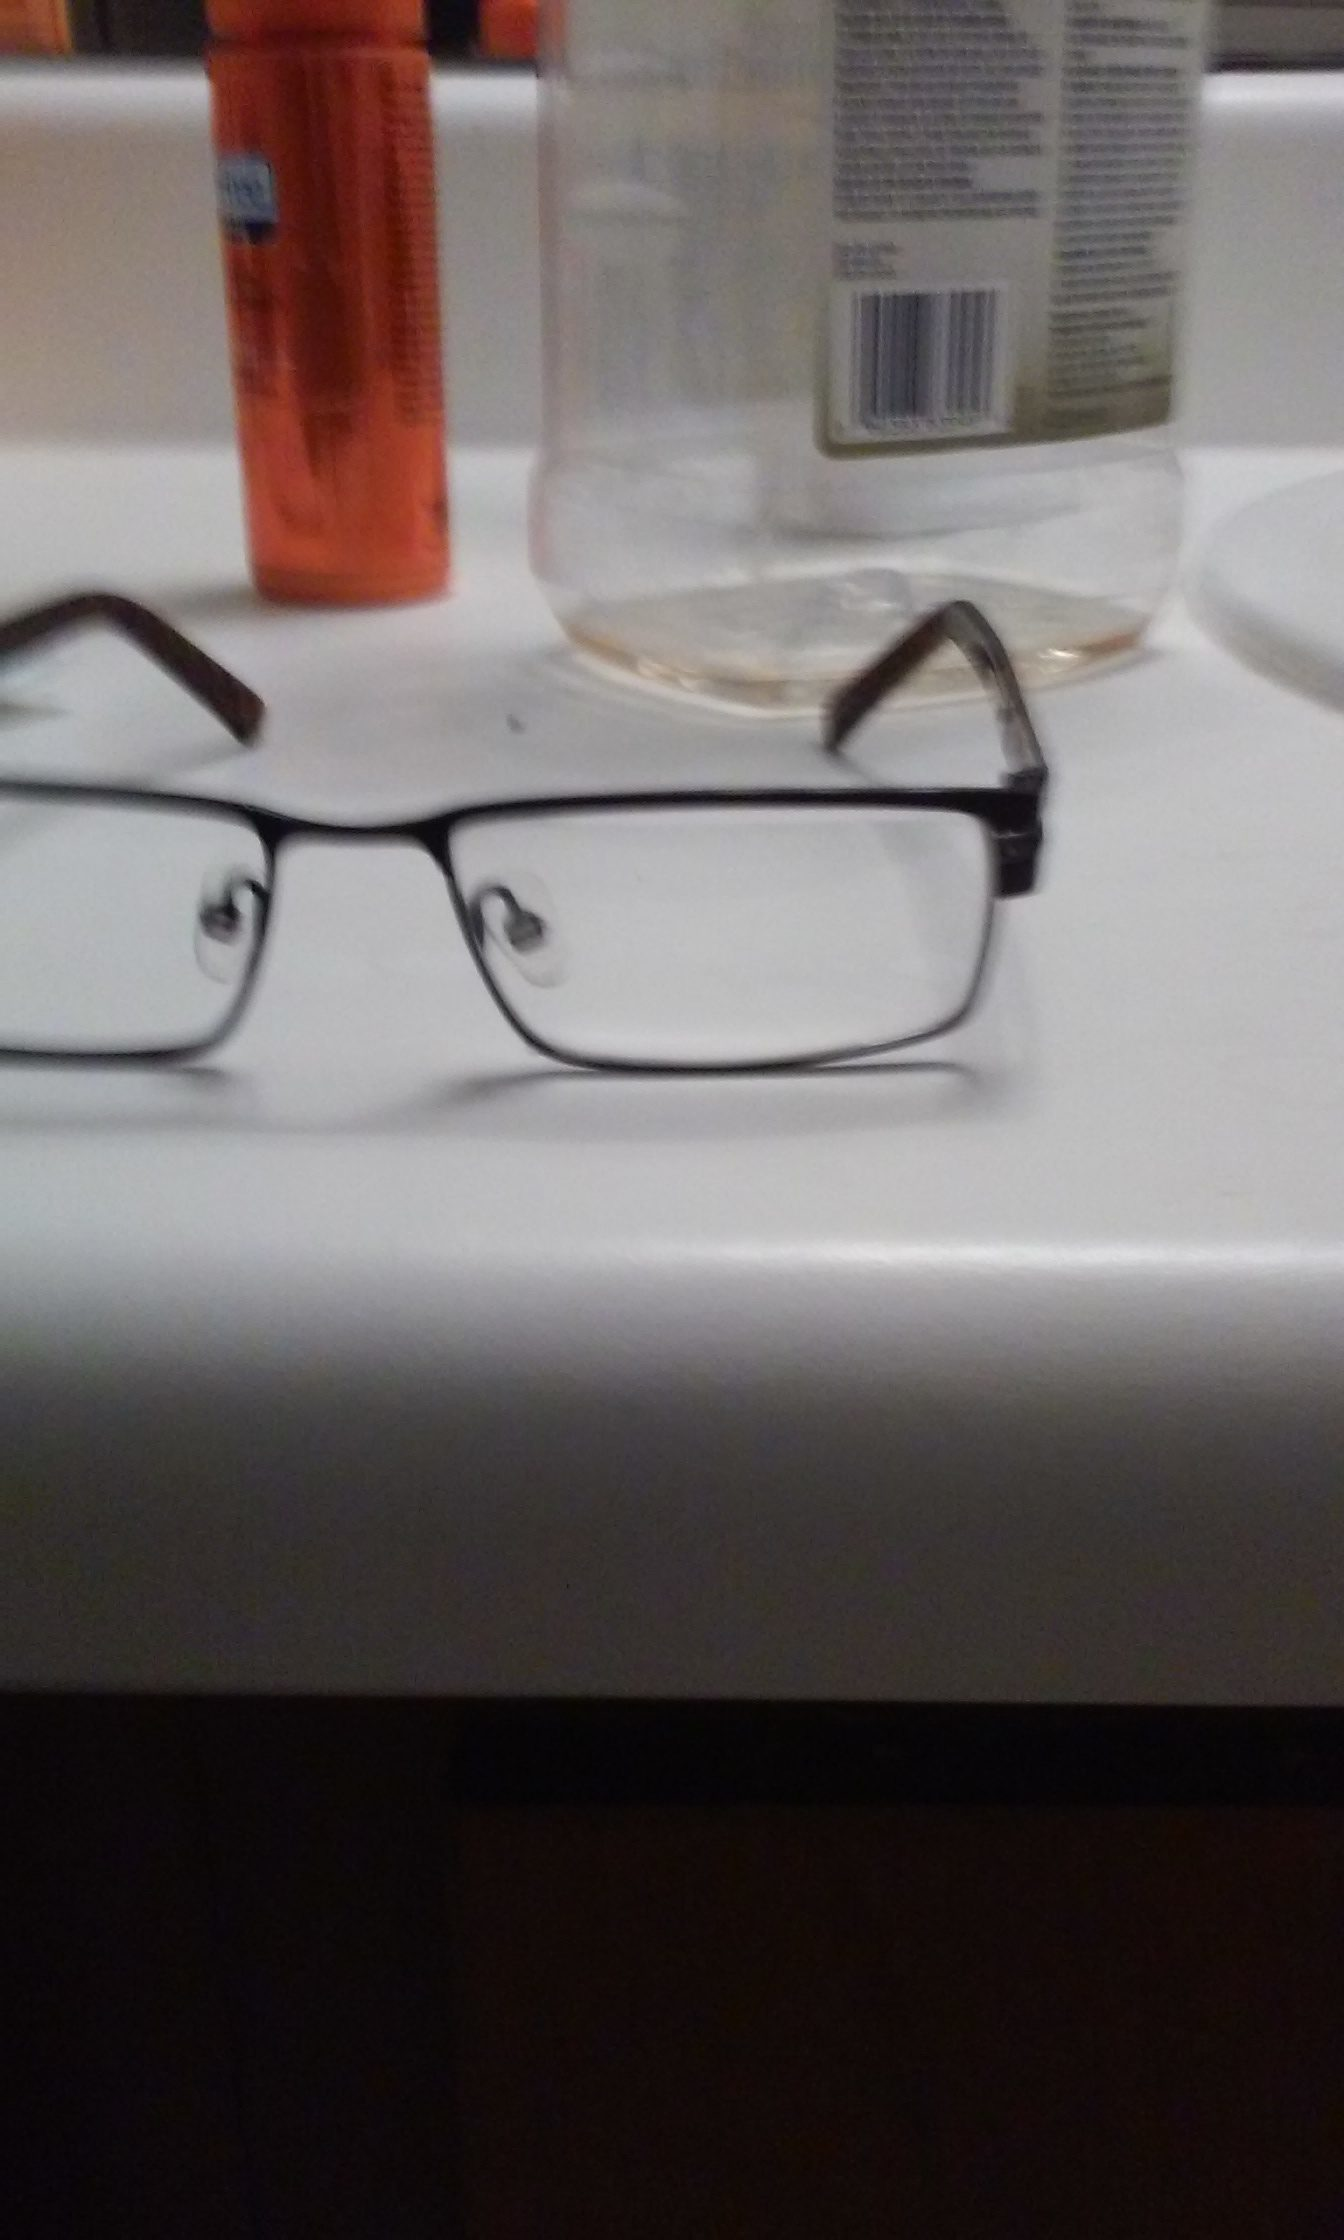 when i purchased my glasses at vision works which were designer frames i noticed the lenses appeared to be not cut right i informed them that the lenses